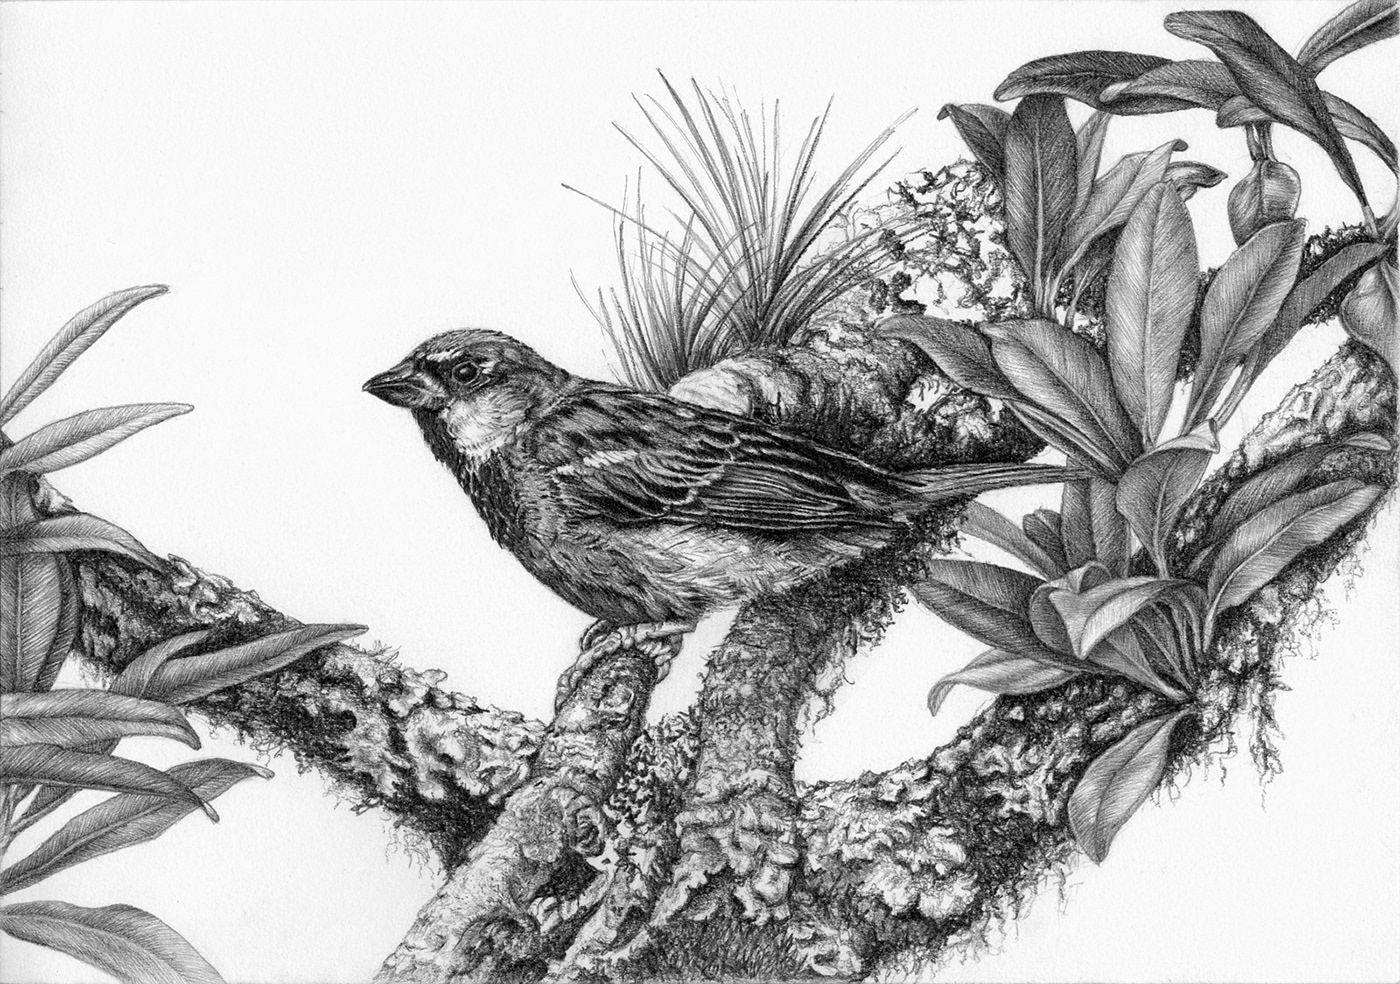 Birds - pencil drawings 4 on Behance